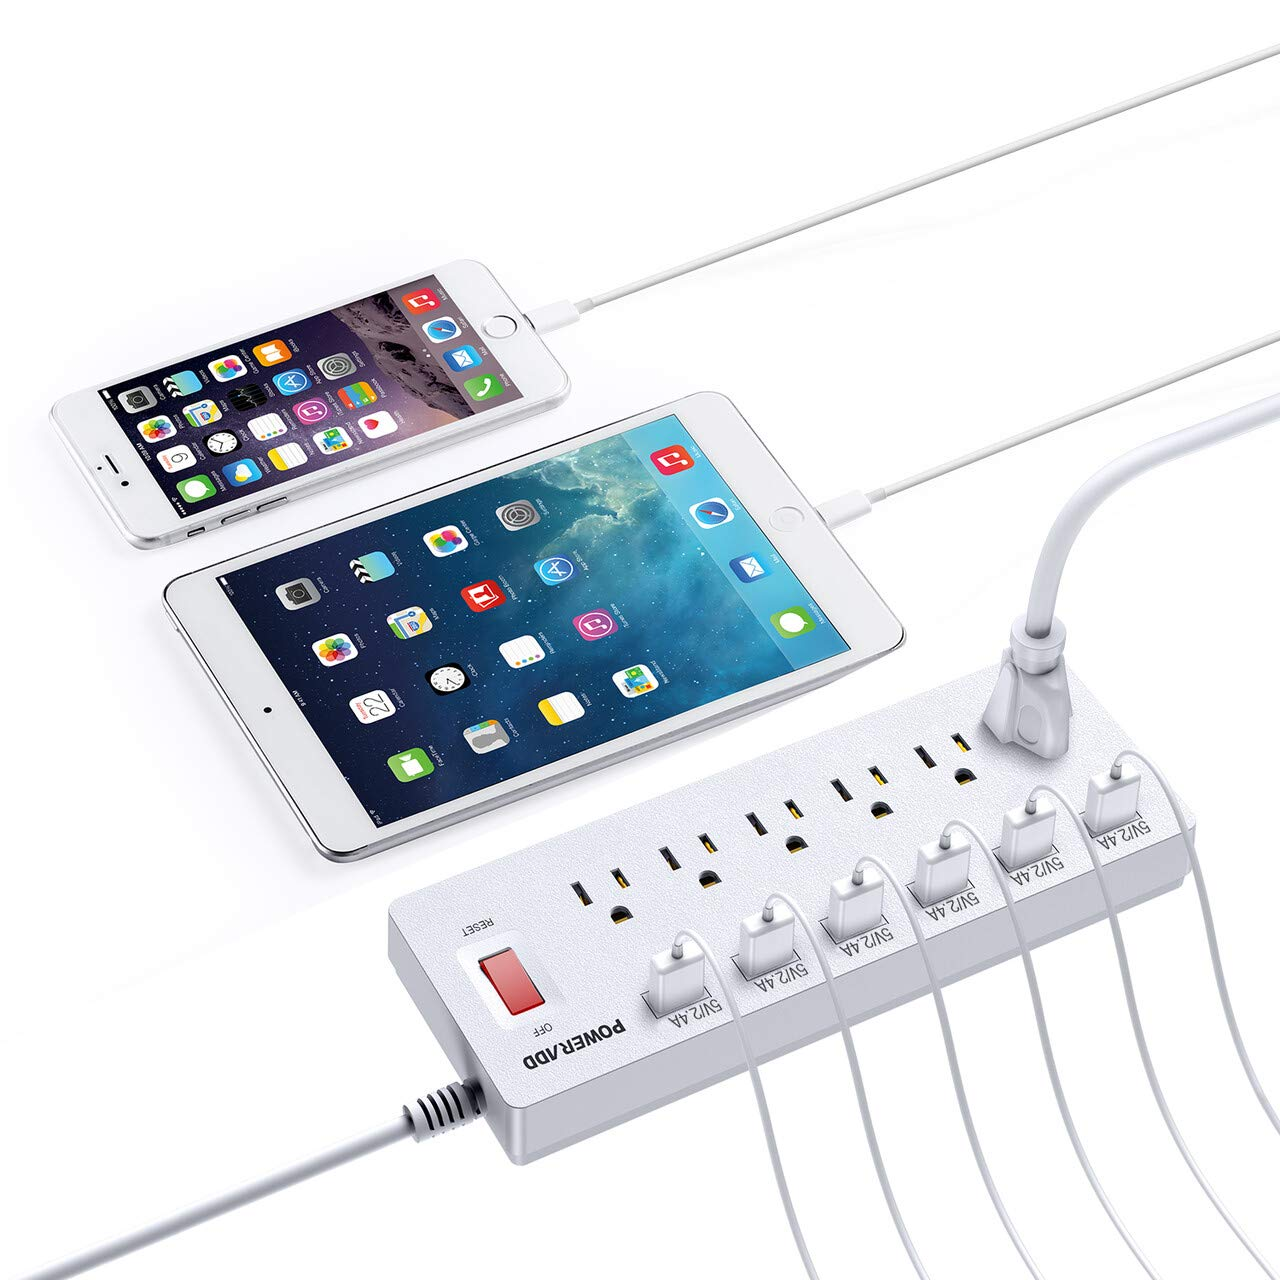 POWERADD Power Strip Surge Protector 6 Outlets  6 Smart USB Charging Ports 6 Heavy Duty Extension